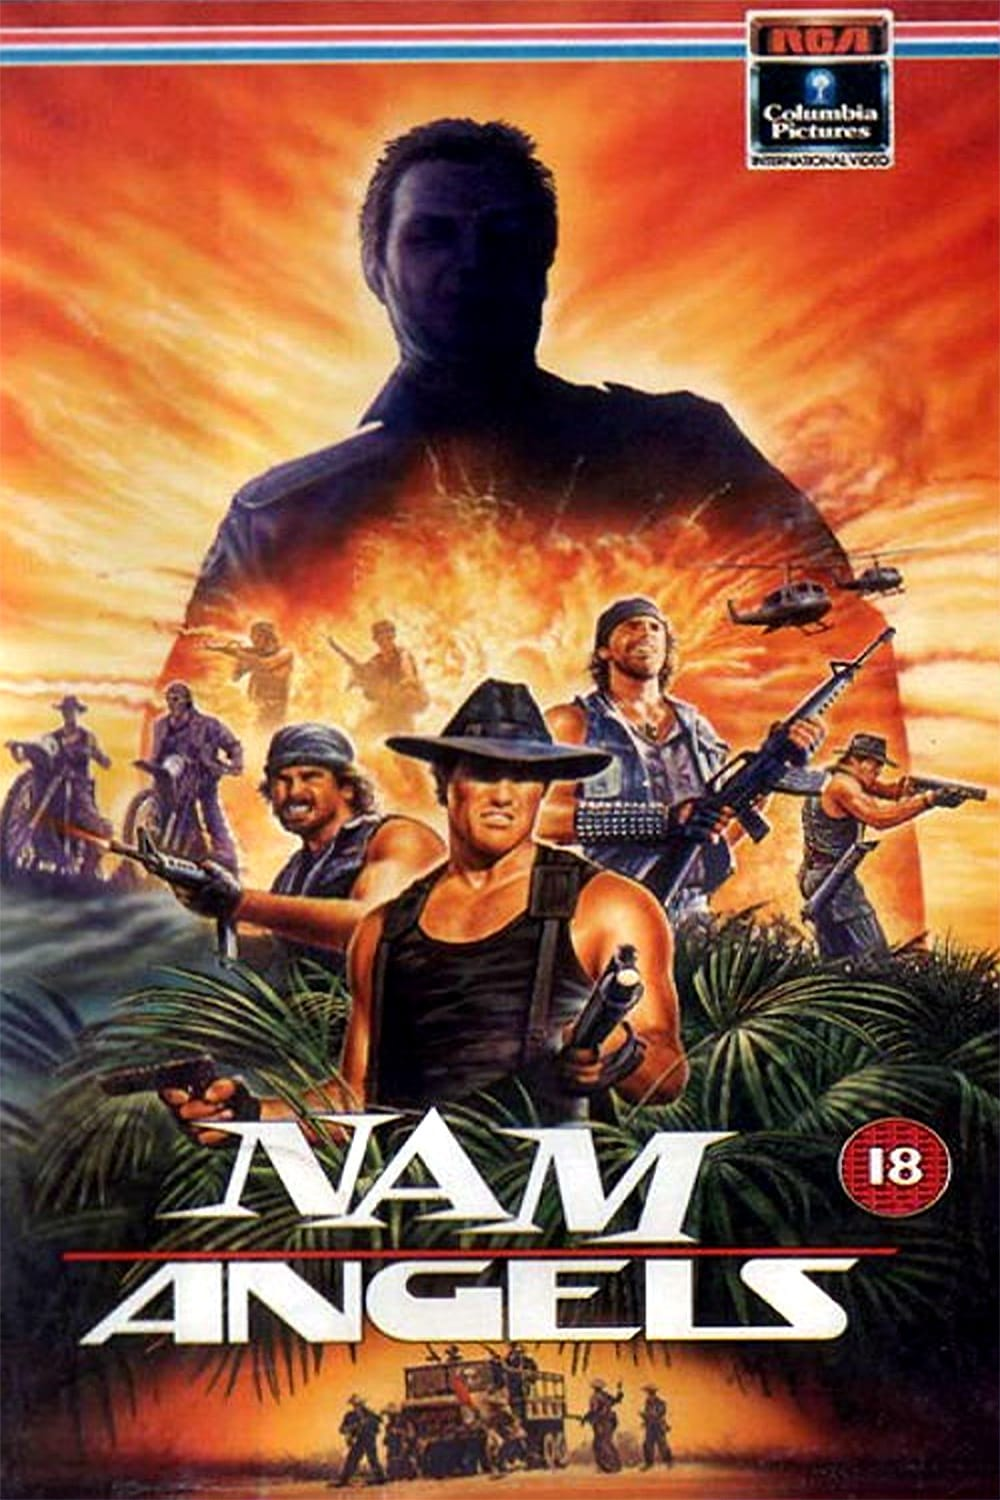 Nam Angels (1989) 192Kbps 25Fps MP3 2Ch TR VHS Audio SHS